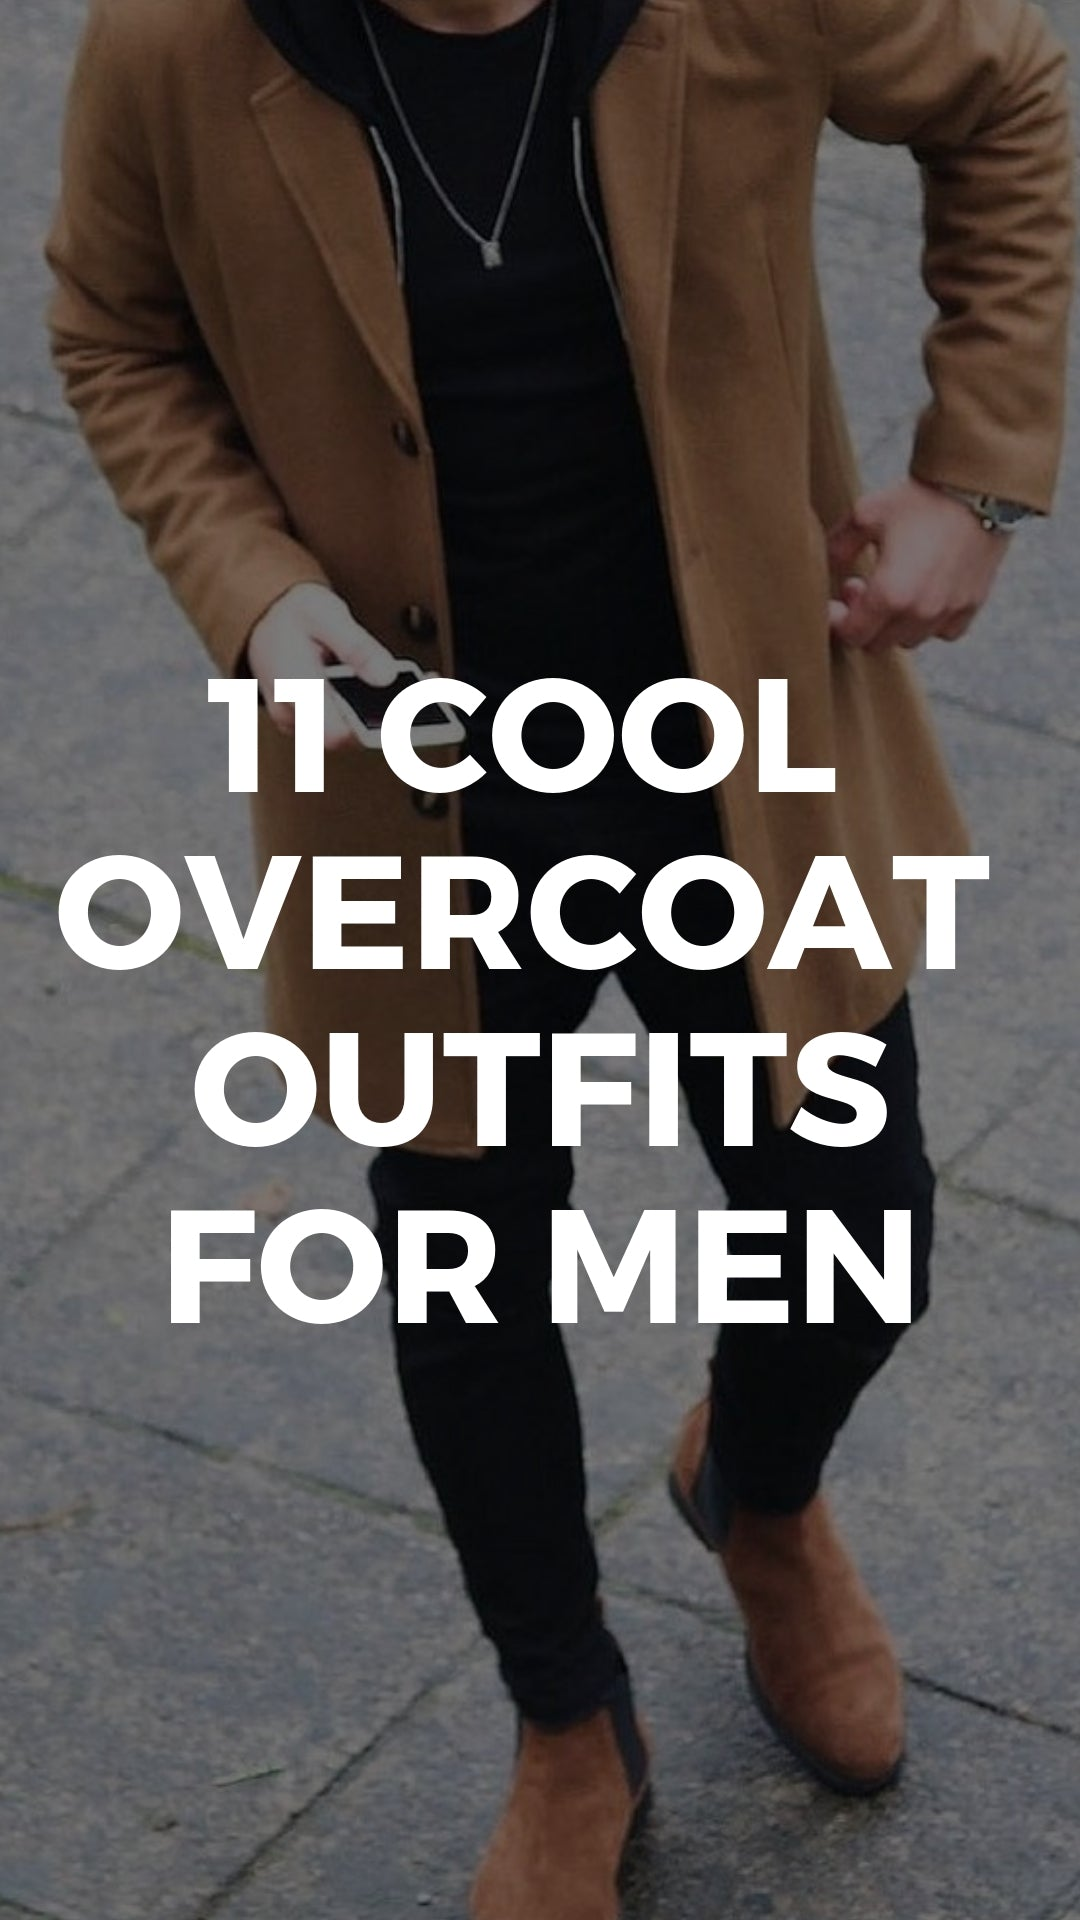 Overcoat outfits for men #street #style #overcoat #mens #fashion